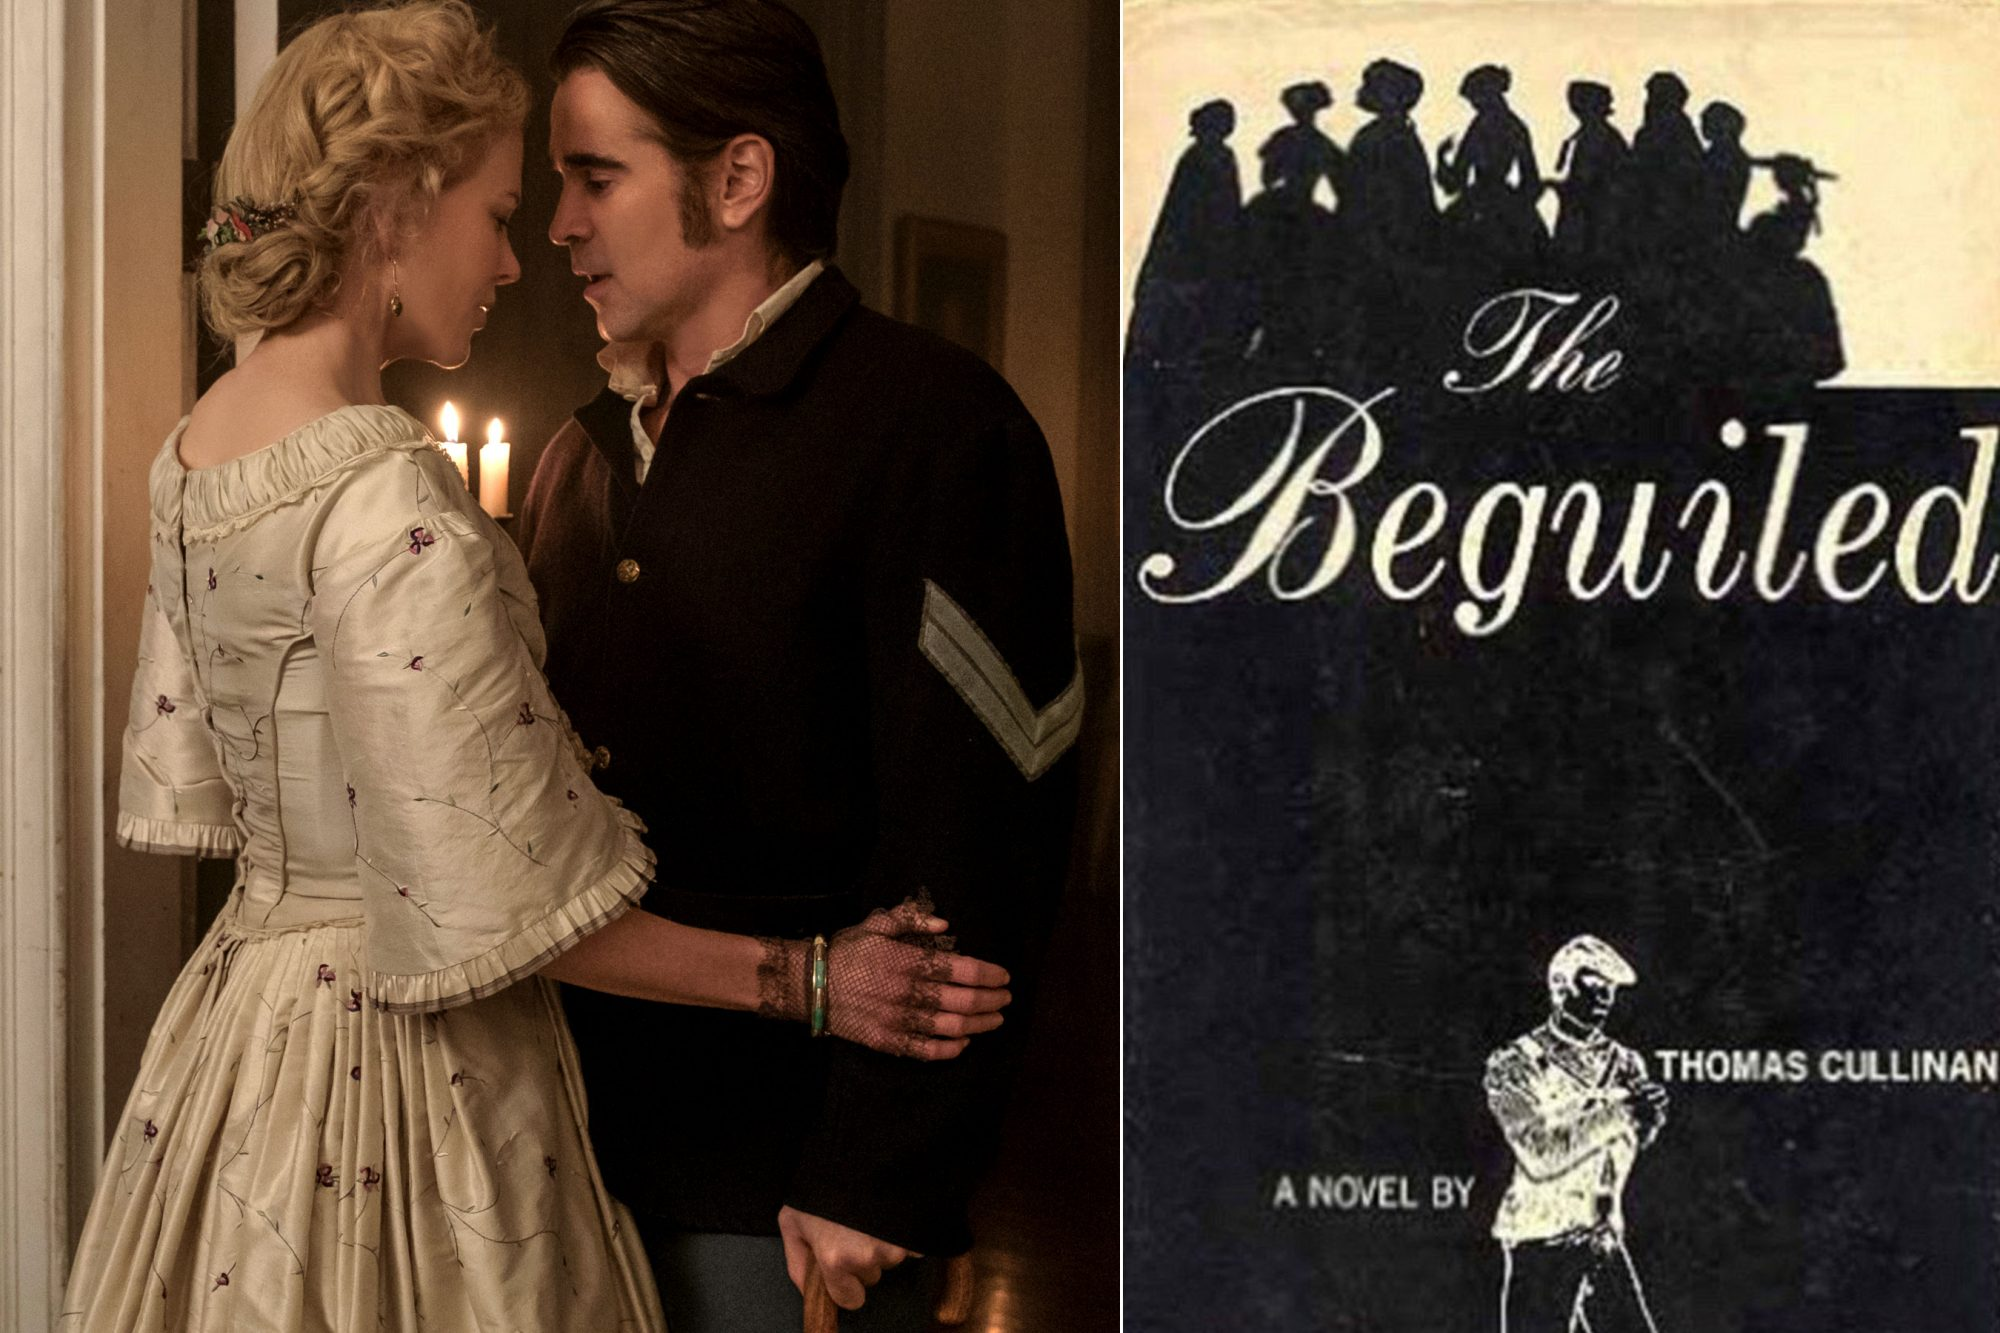 The Beguiled by Thomas P. Cullinan